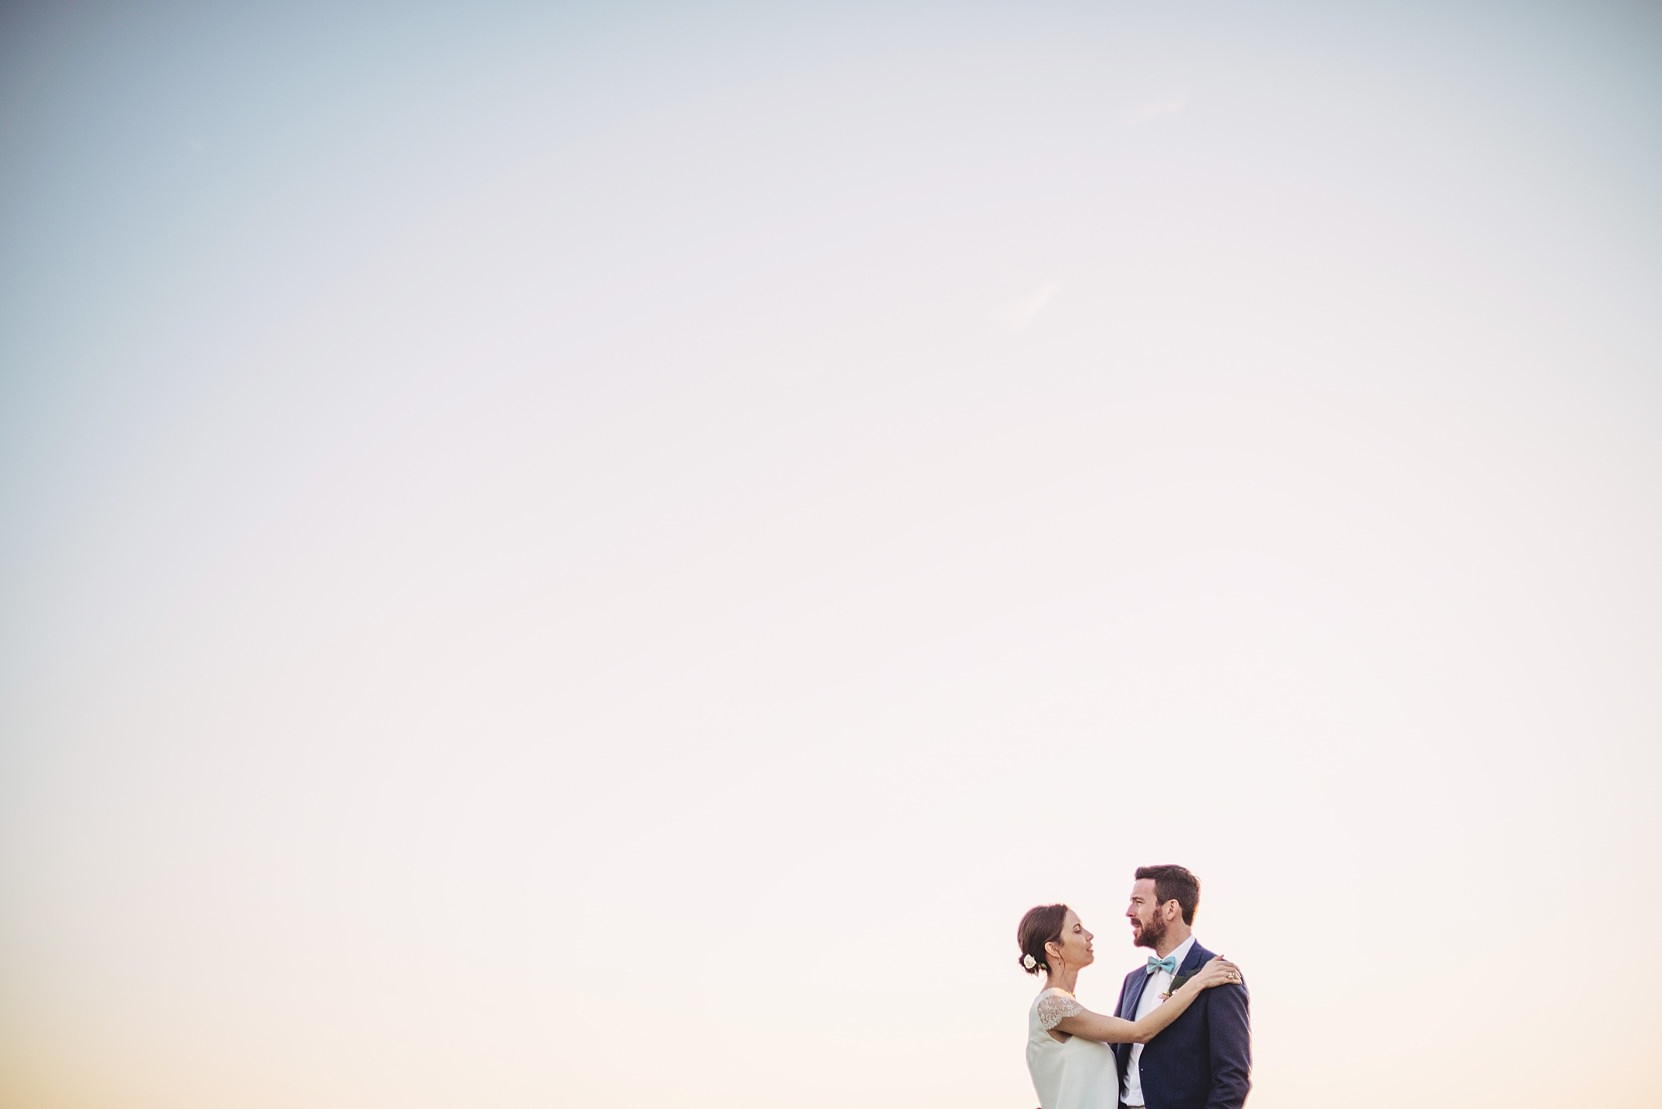 Beautiful shots of a bride and groom at sunset